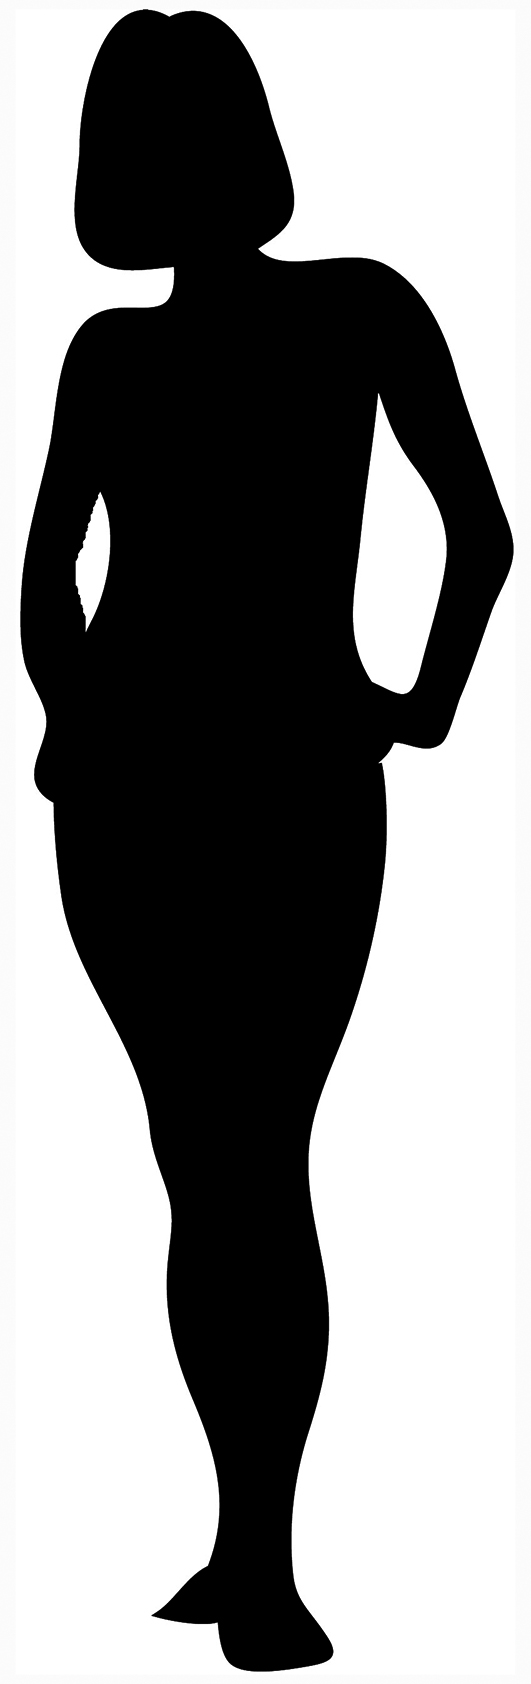 Black woman at getdrawings. Afro clipart silhouette